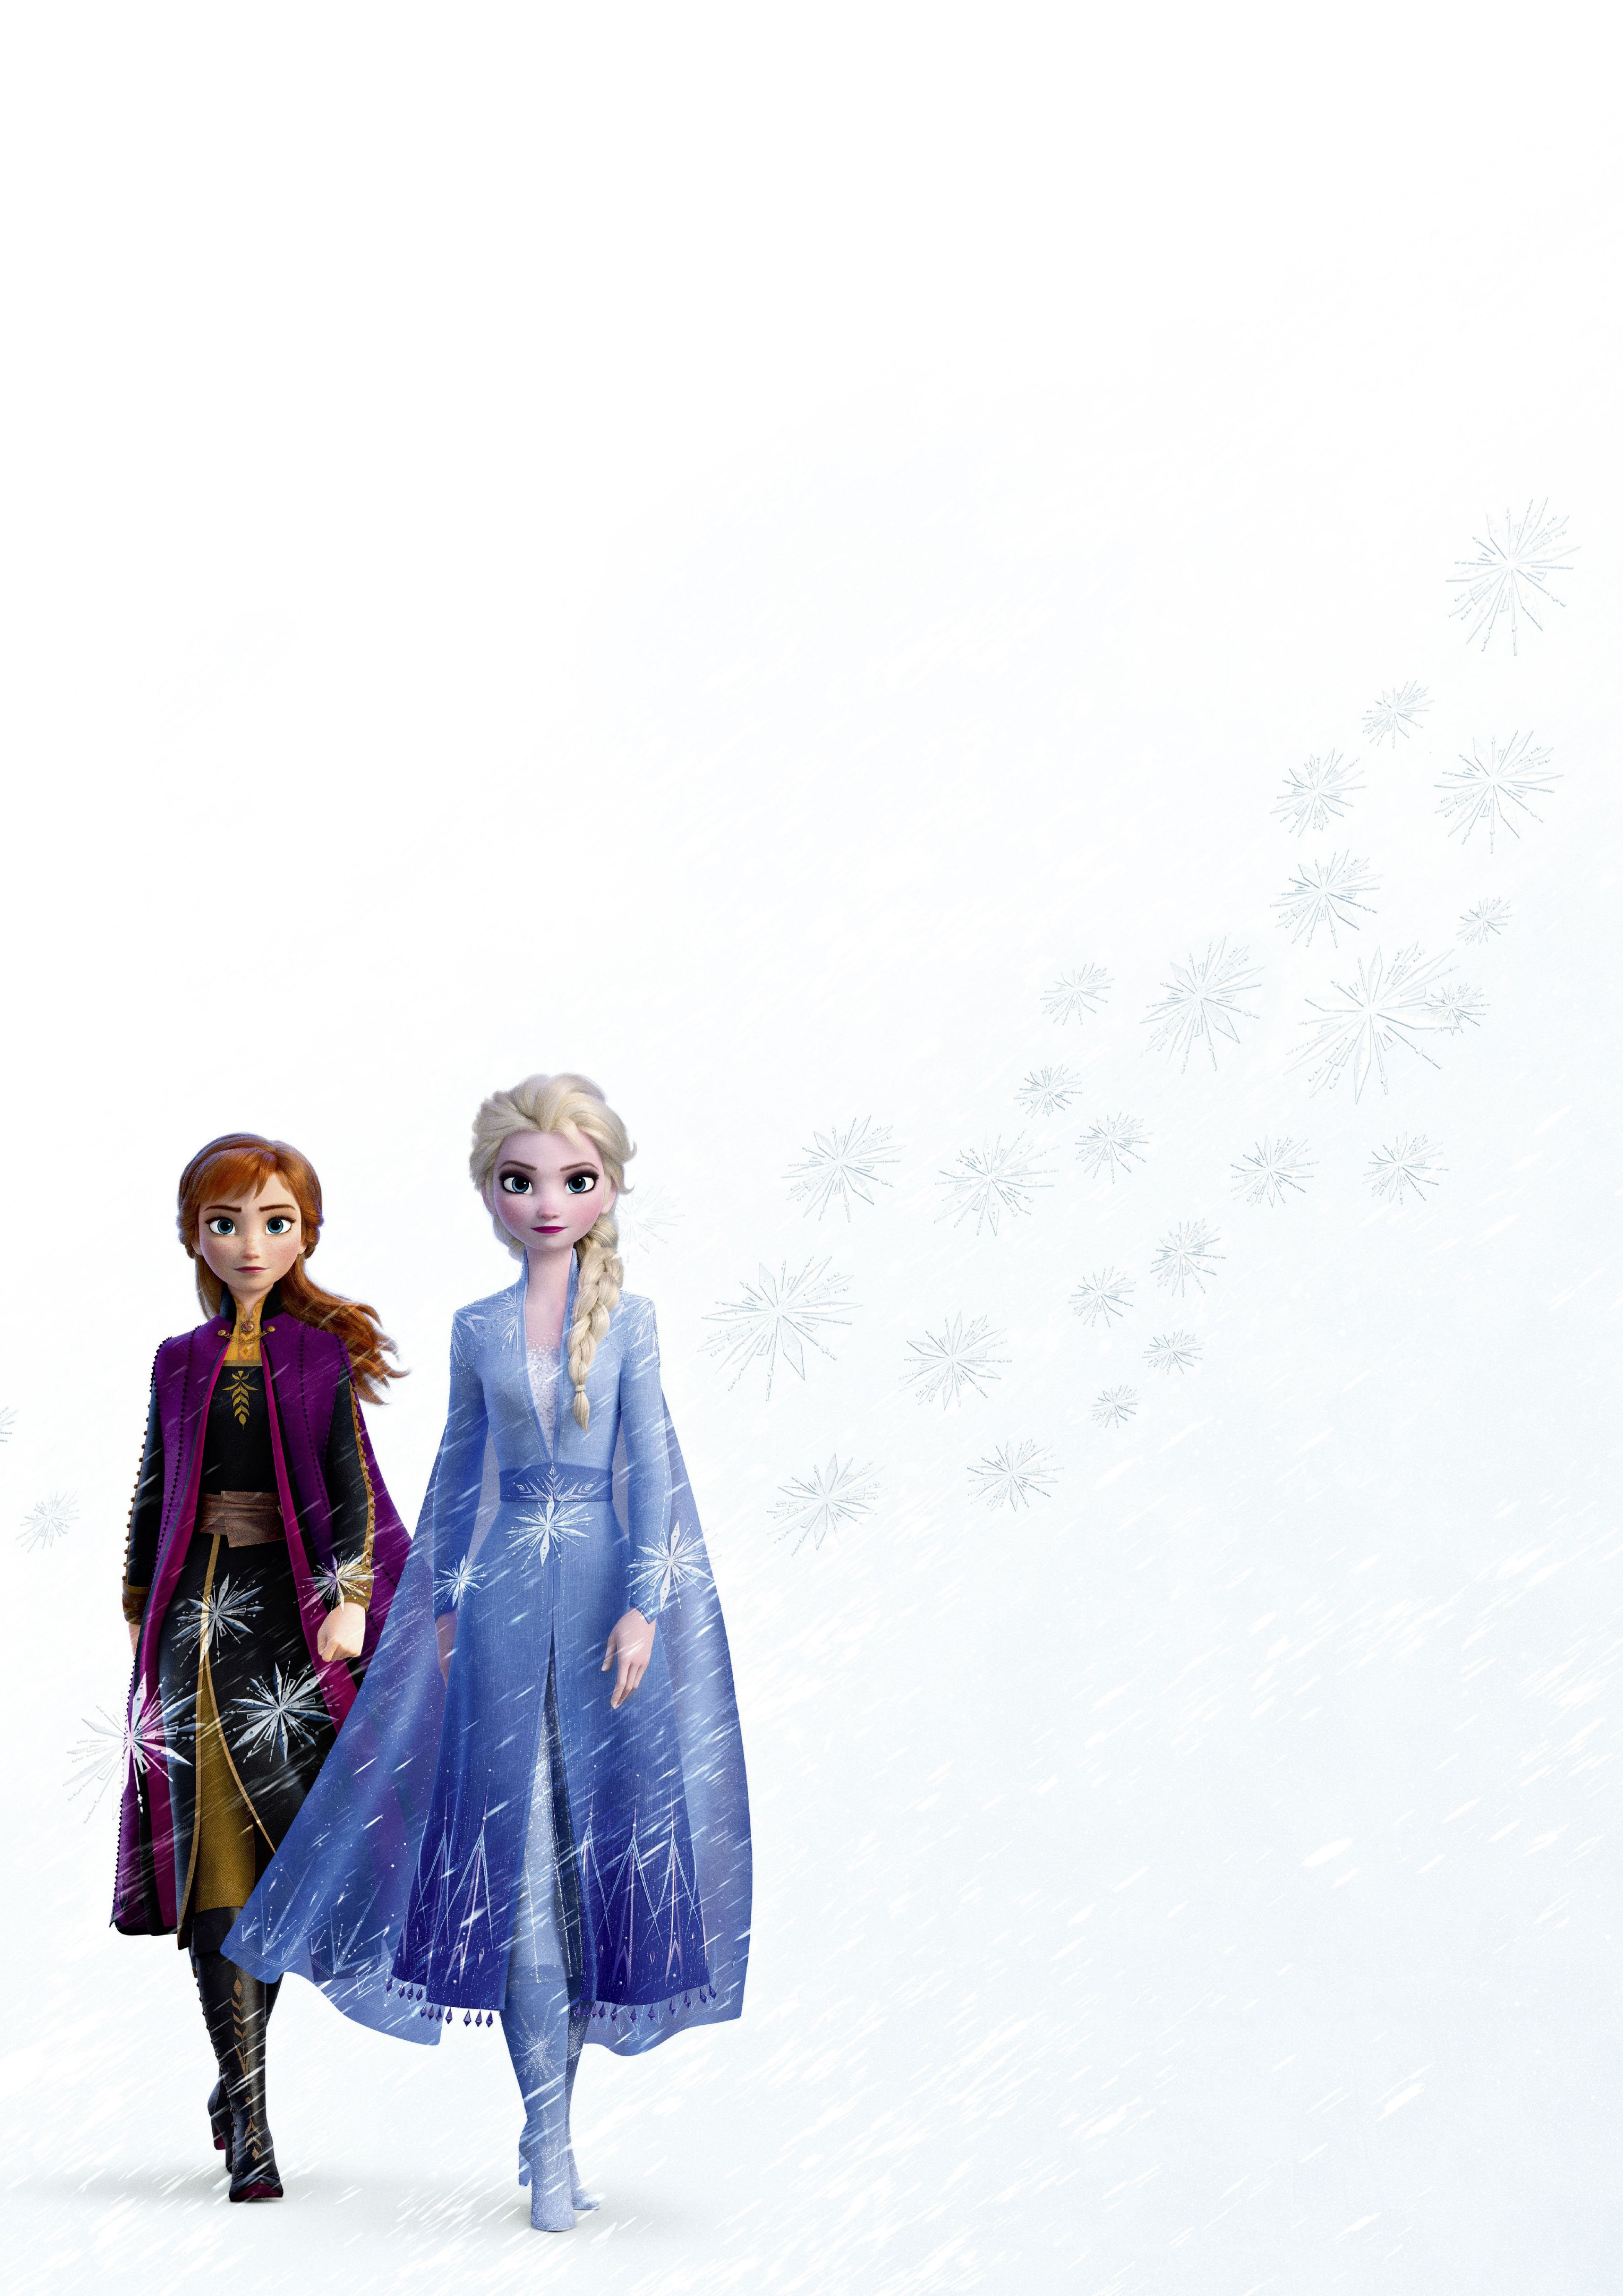 Elsa And Anna In Frozen 2 Movie Wallpaper Hd Movies 4k Wallpapers